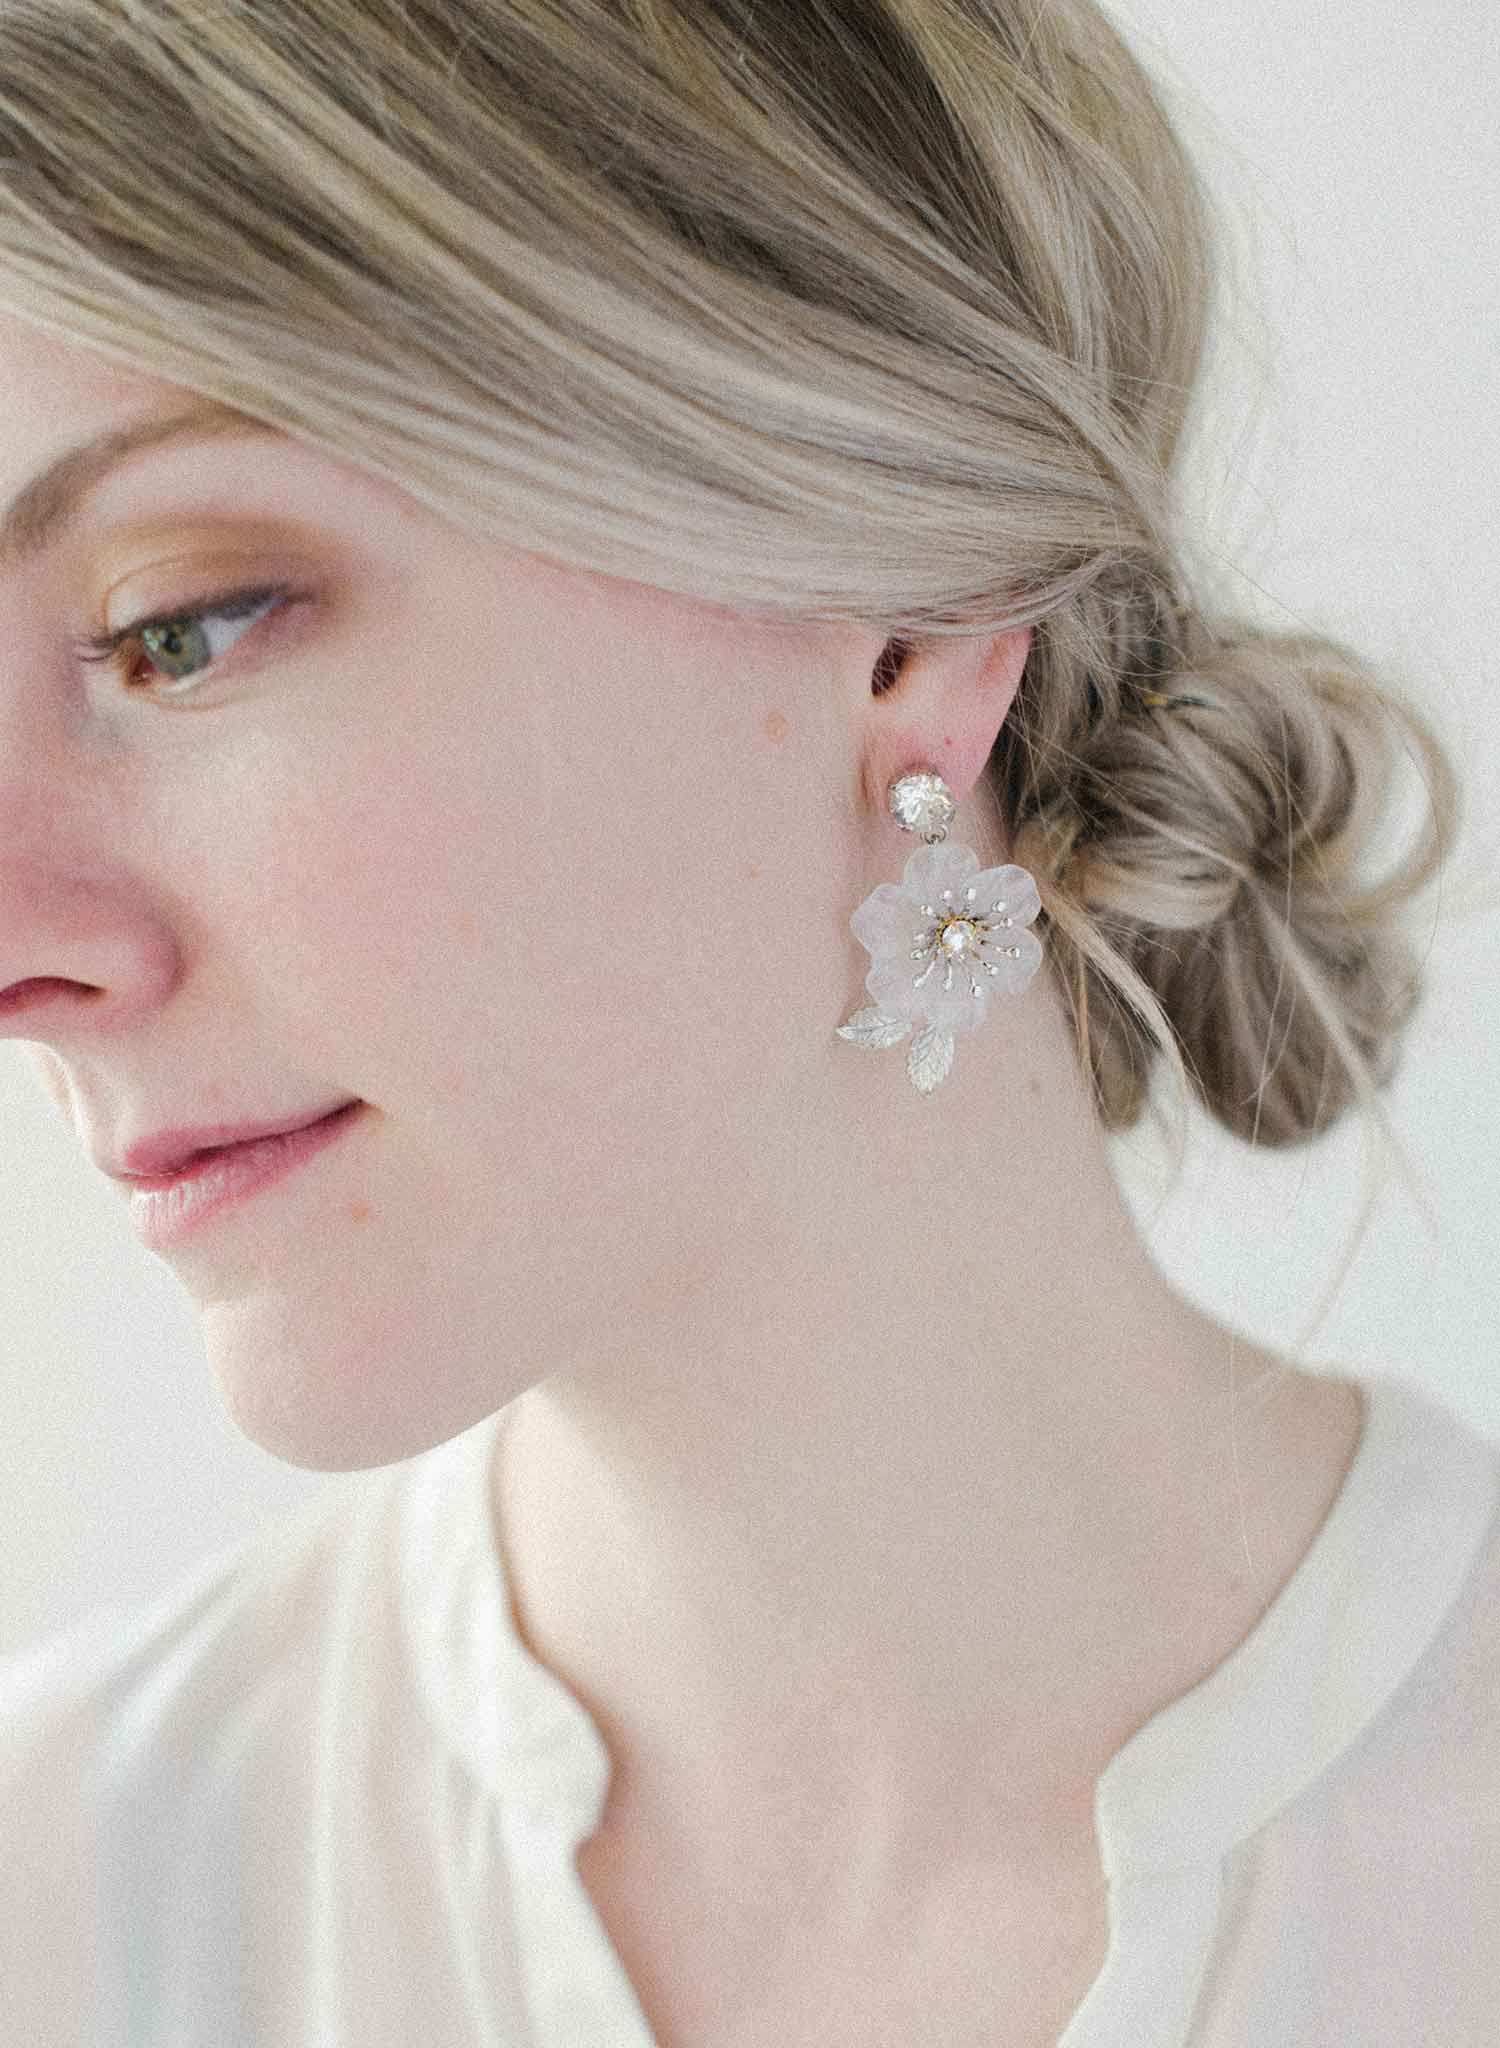 Milk glass dainty blossom earrings - Style #2057